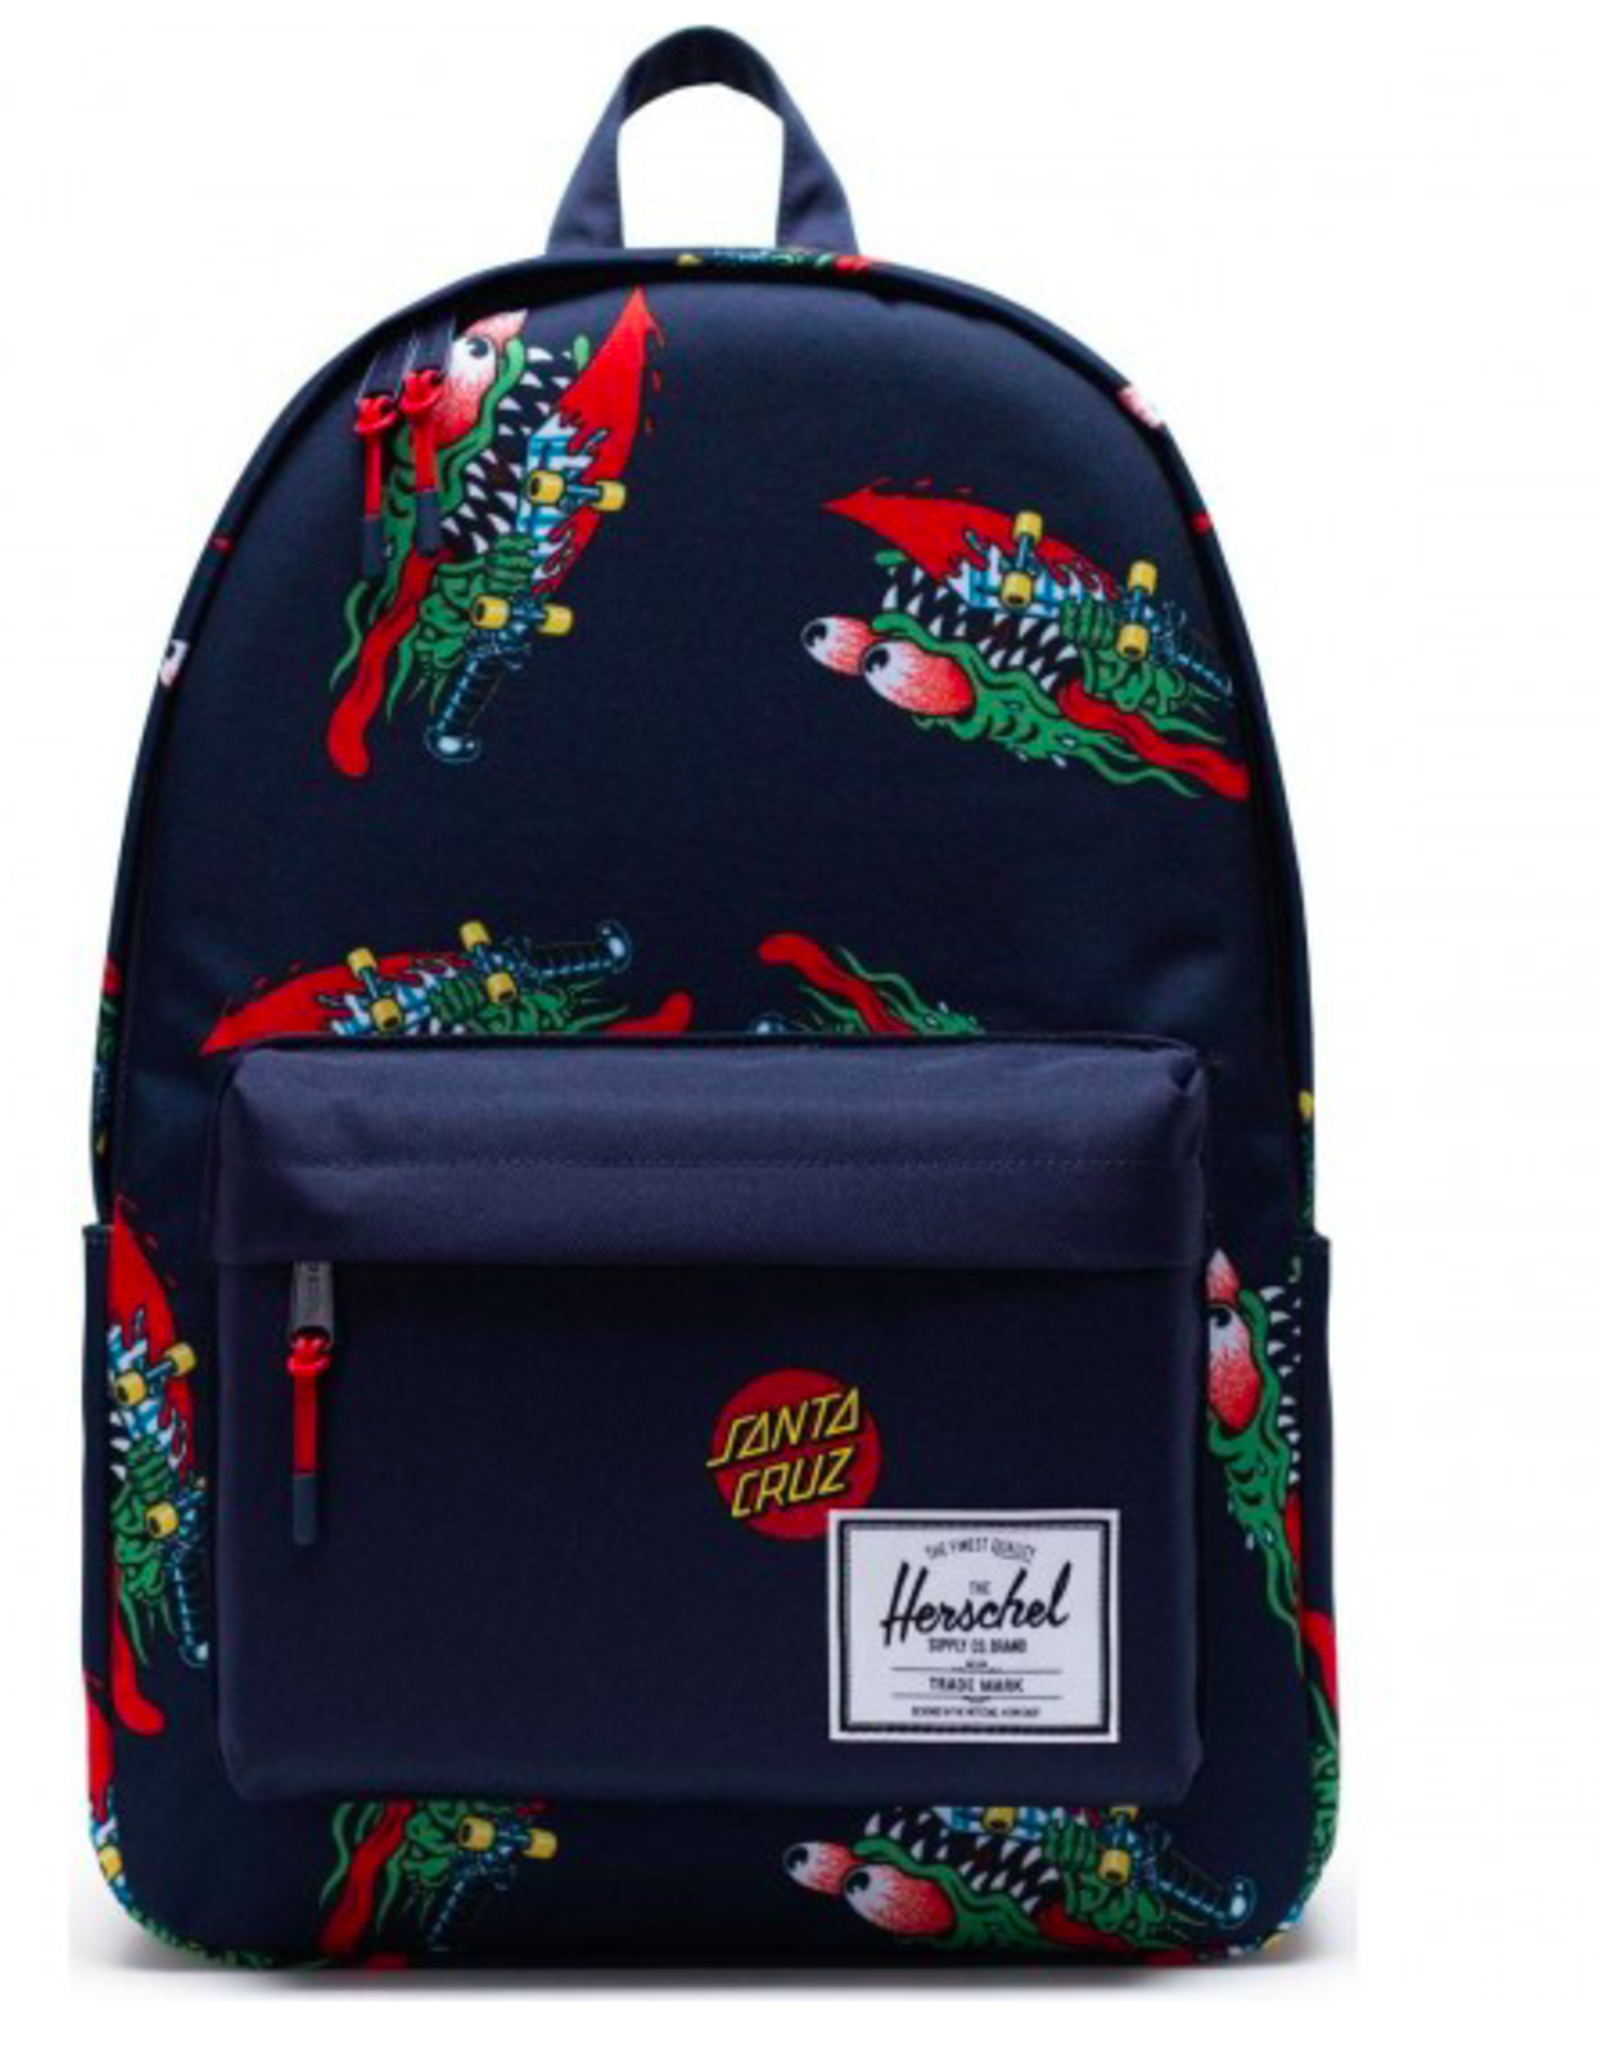 HERSCHEL HERSCHEL X SANTA CRUZ CLASSIC X-LARGE BACKPACK - SLASHER/PEACOAT/TRUE RED